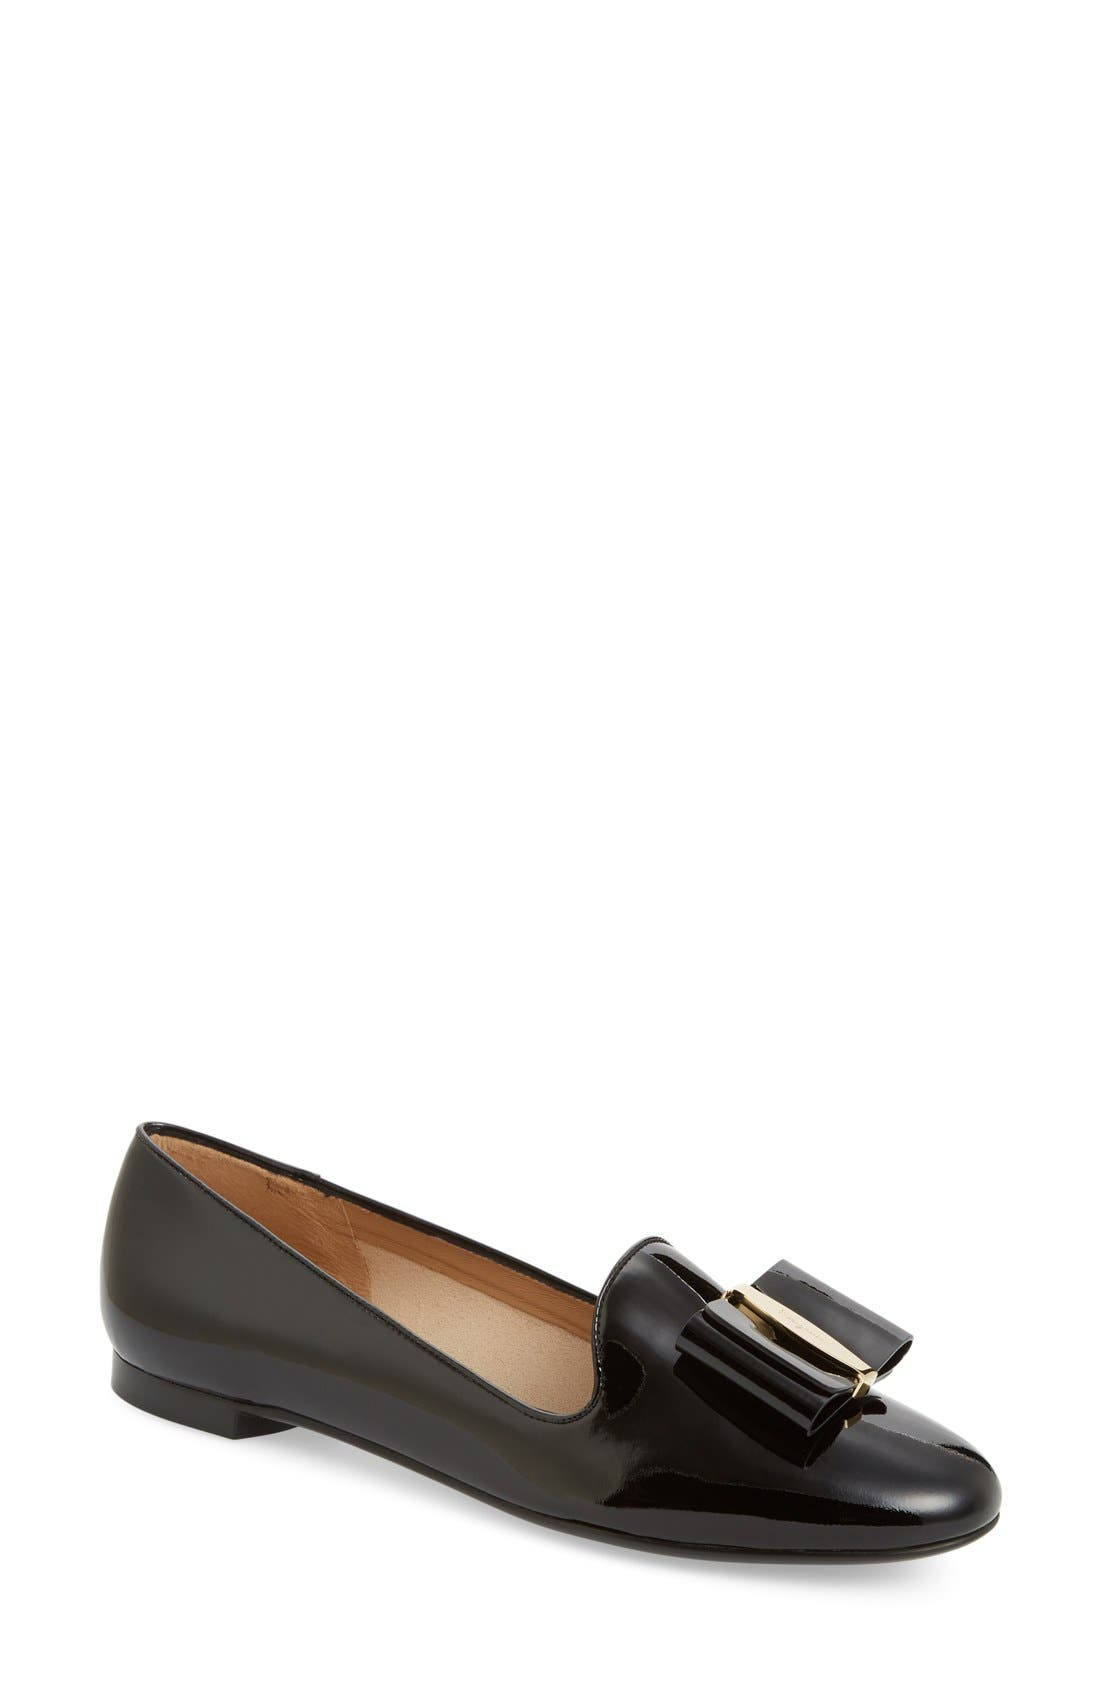 Bow Smoking Loafer,                         Main,                         color, 001